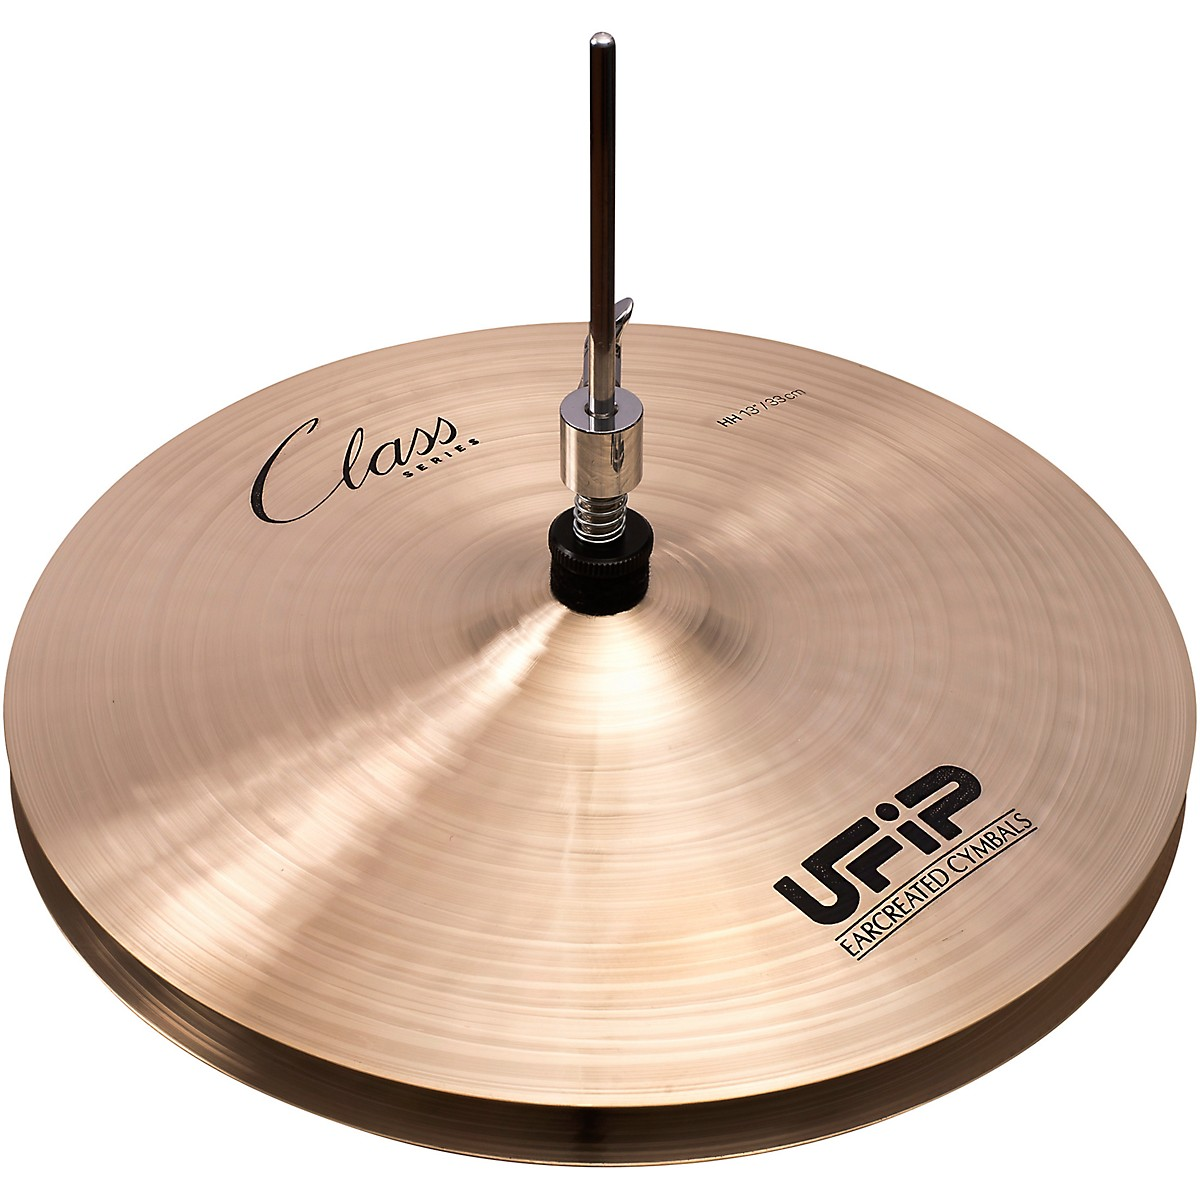 UFIP Class Series Light Hi-Hat Cymbal Pair